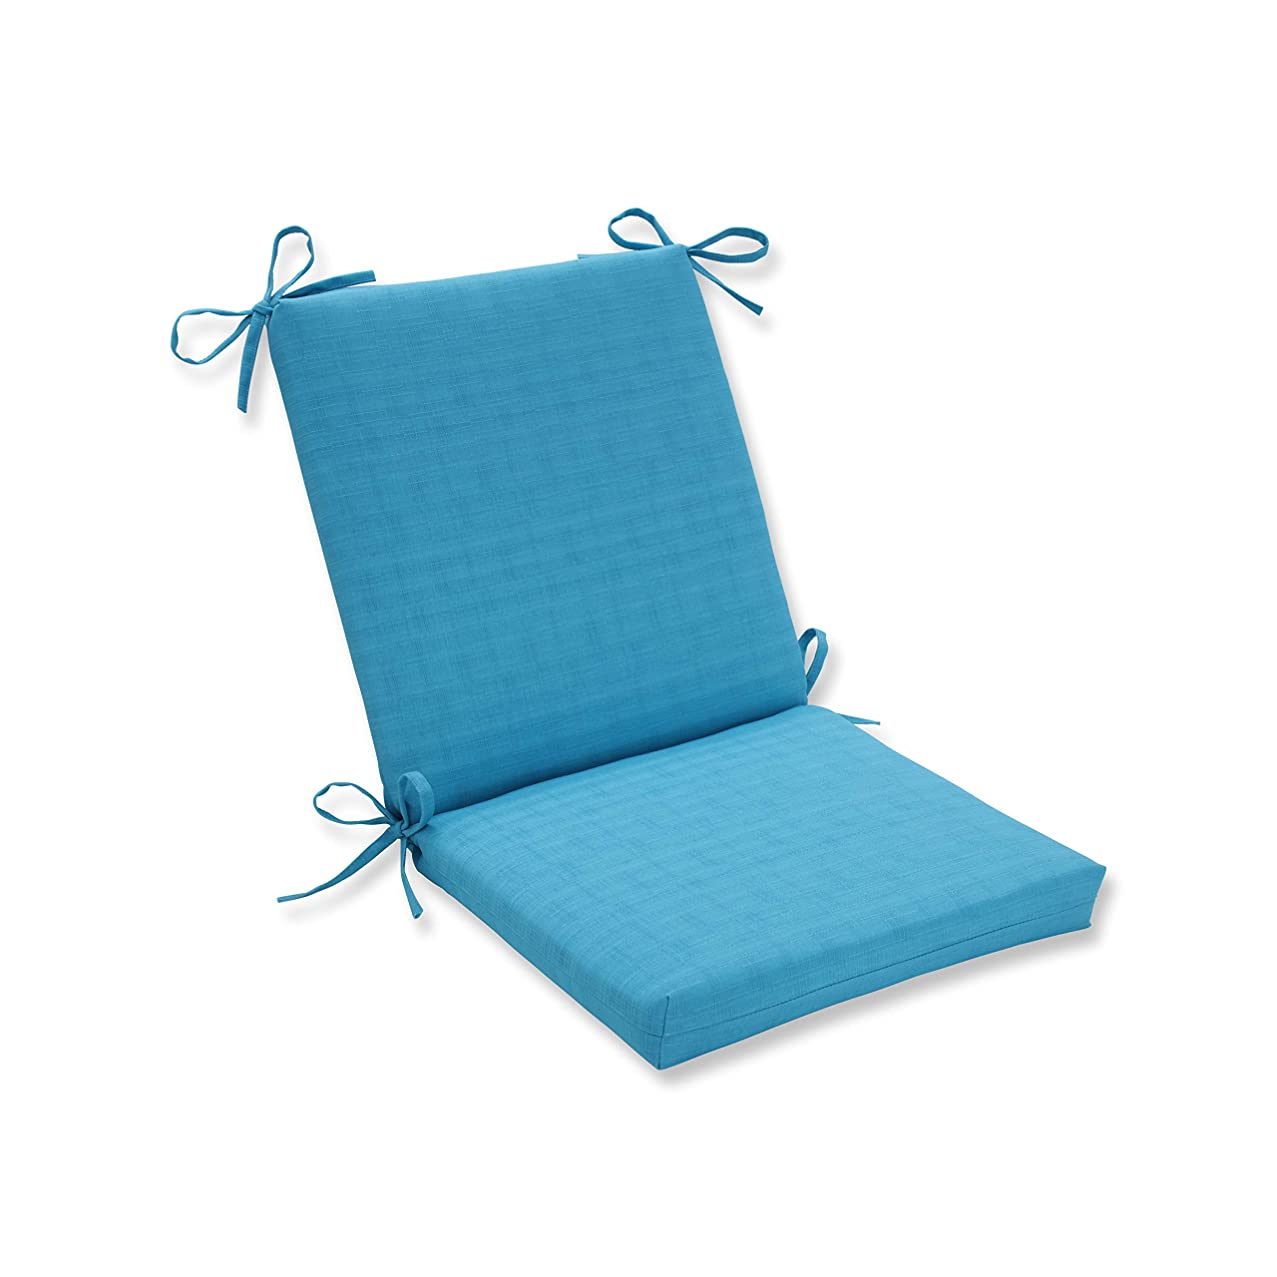 Pillow Perfect Outdoor Veranda Turquoise Squared Corners Chair Cushion